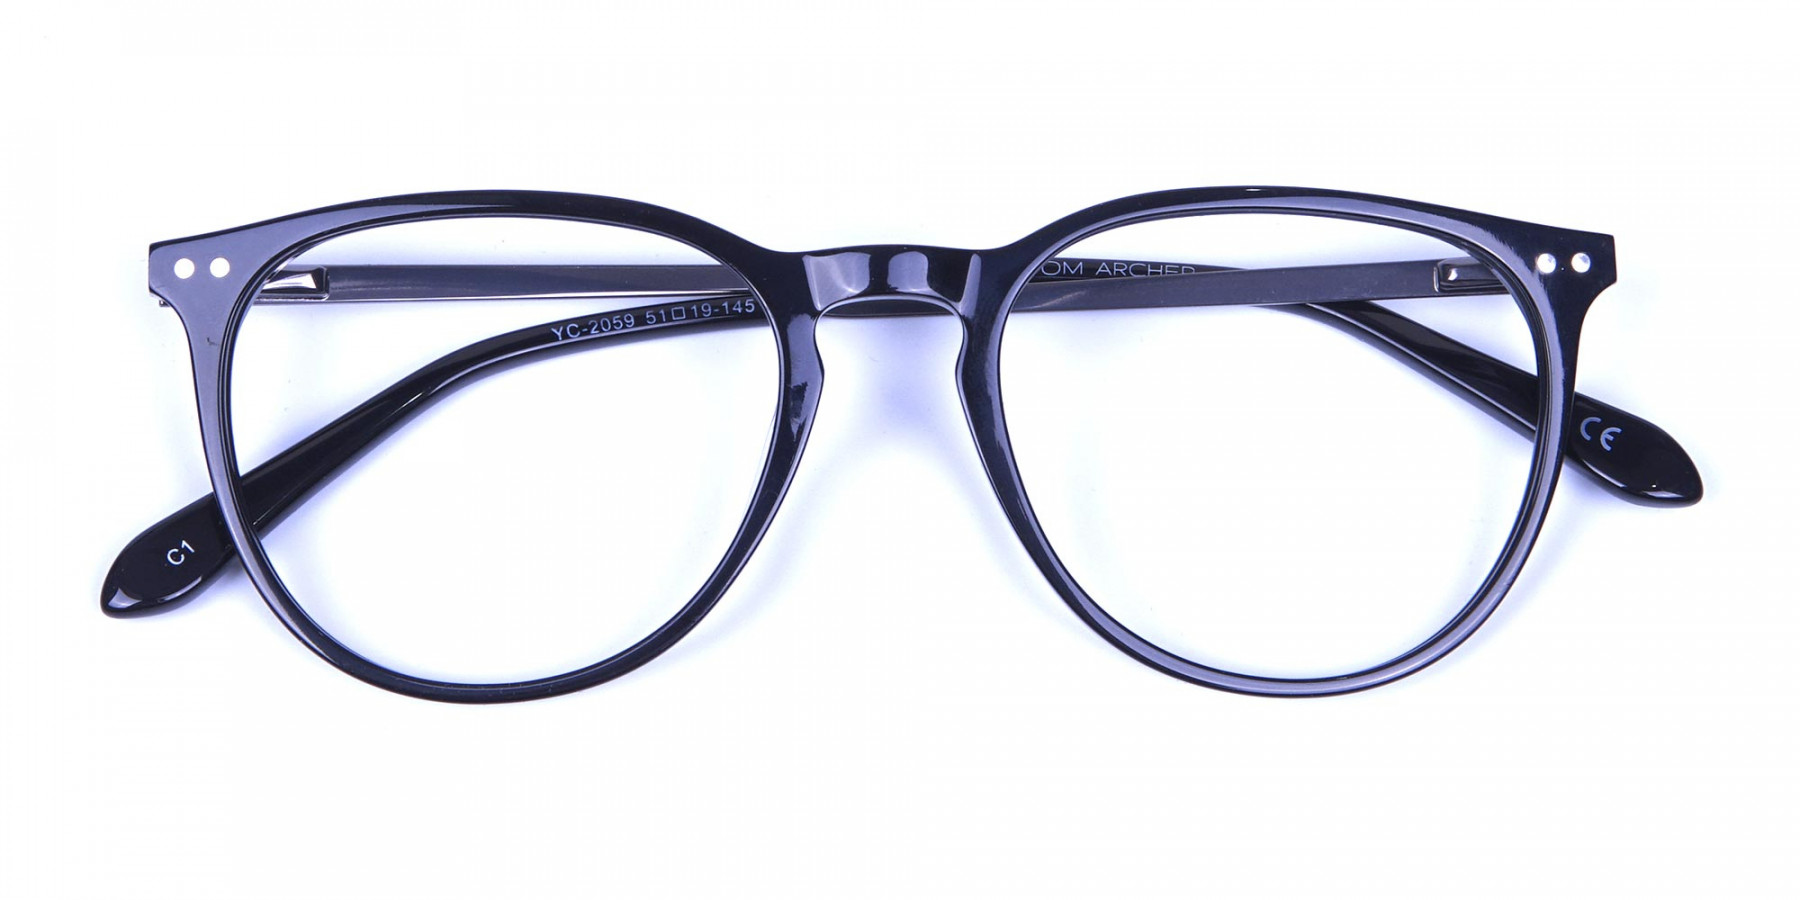 Glossy Black Round Glasses with Slim Arms